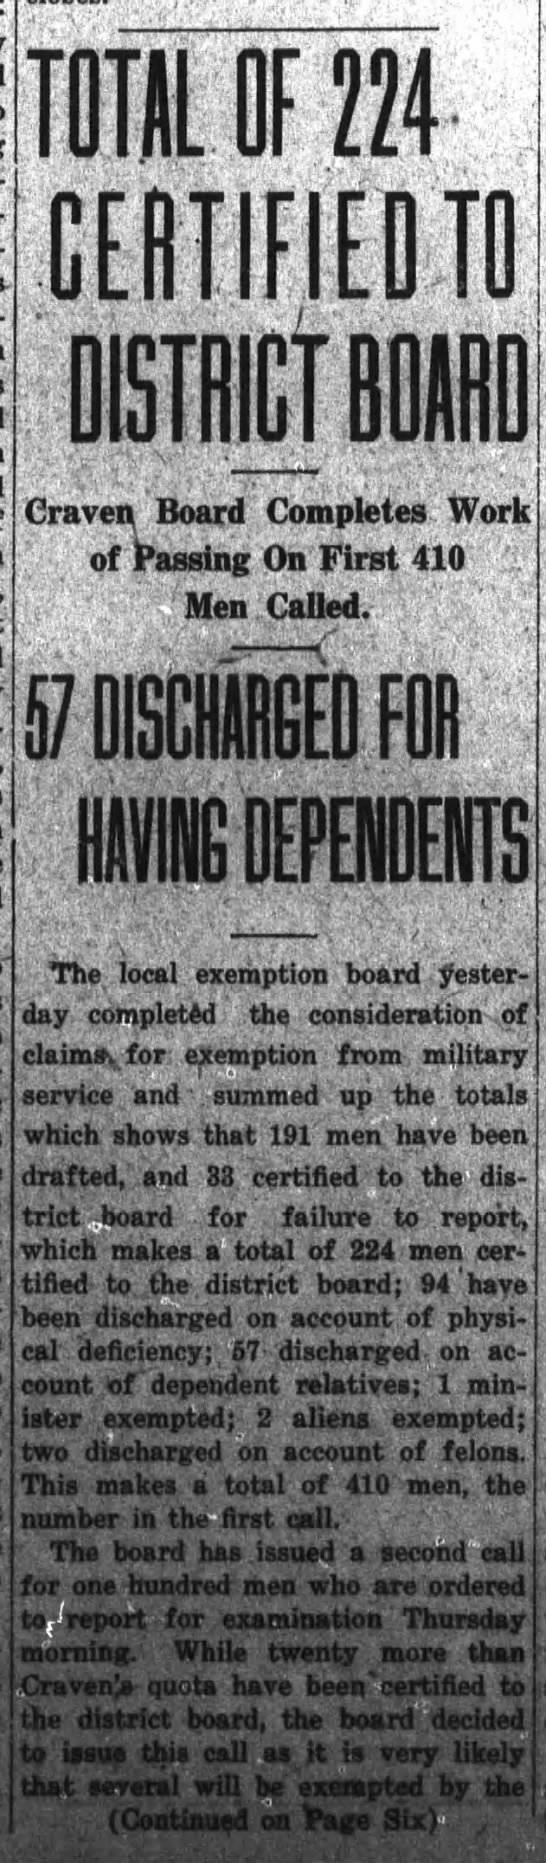 Draft Exemption update (Pt. 1) 1917 - TOTAL OF 224 CERTIFIED TO Craven, Board...